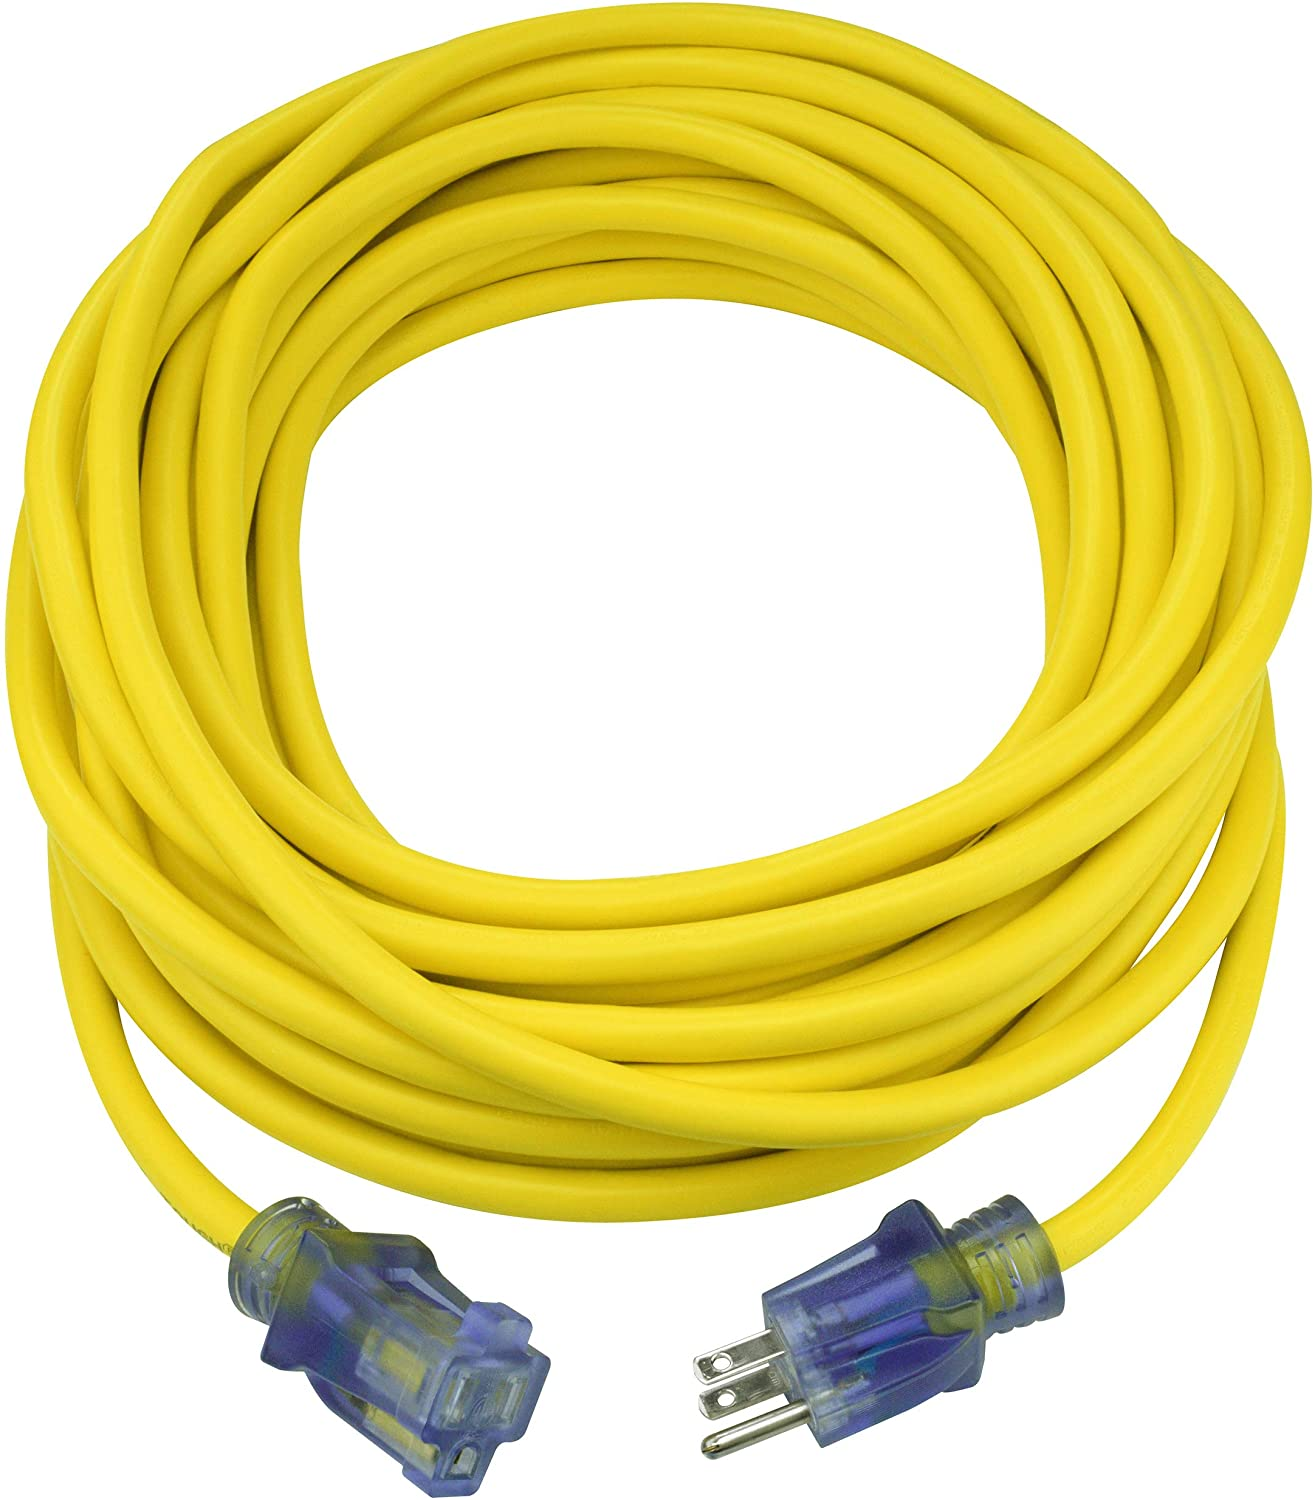 Clear Power 50 ft Extra Heavy Duty Contractor Grade Extension Cord 10/3 SJTOW, Power Indicator Light, Oil Water & Weather Resistant, Flame Retardant, Yellow, 3 Prong Grounded Plug, CP10175